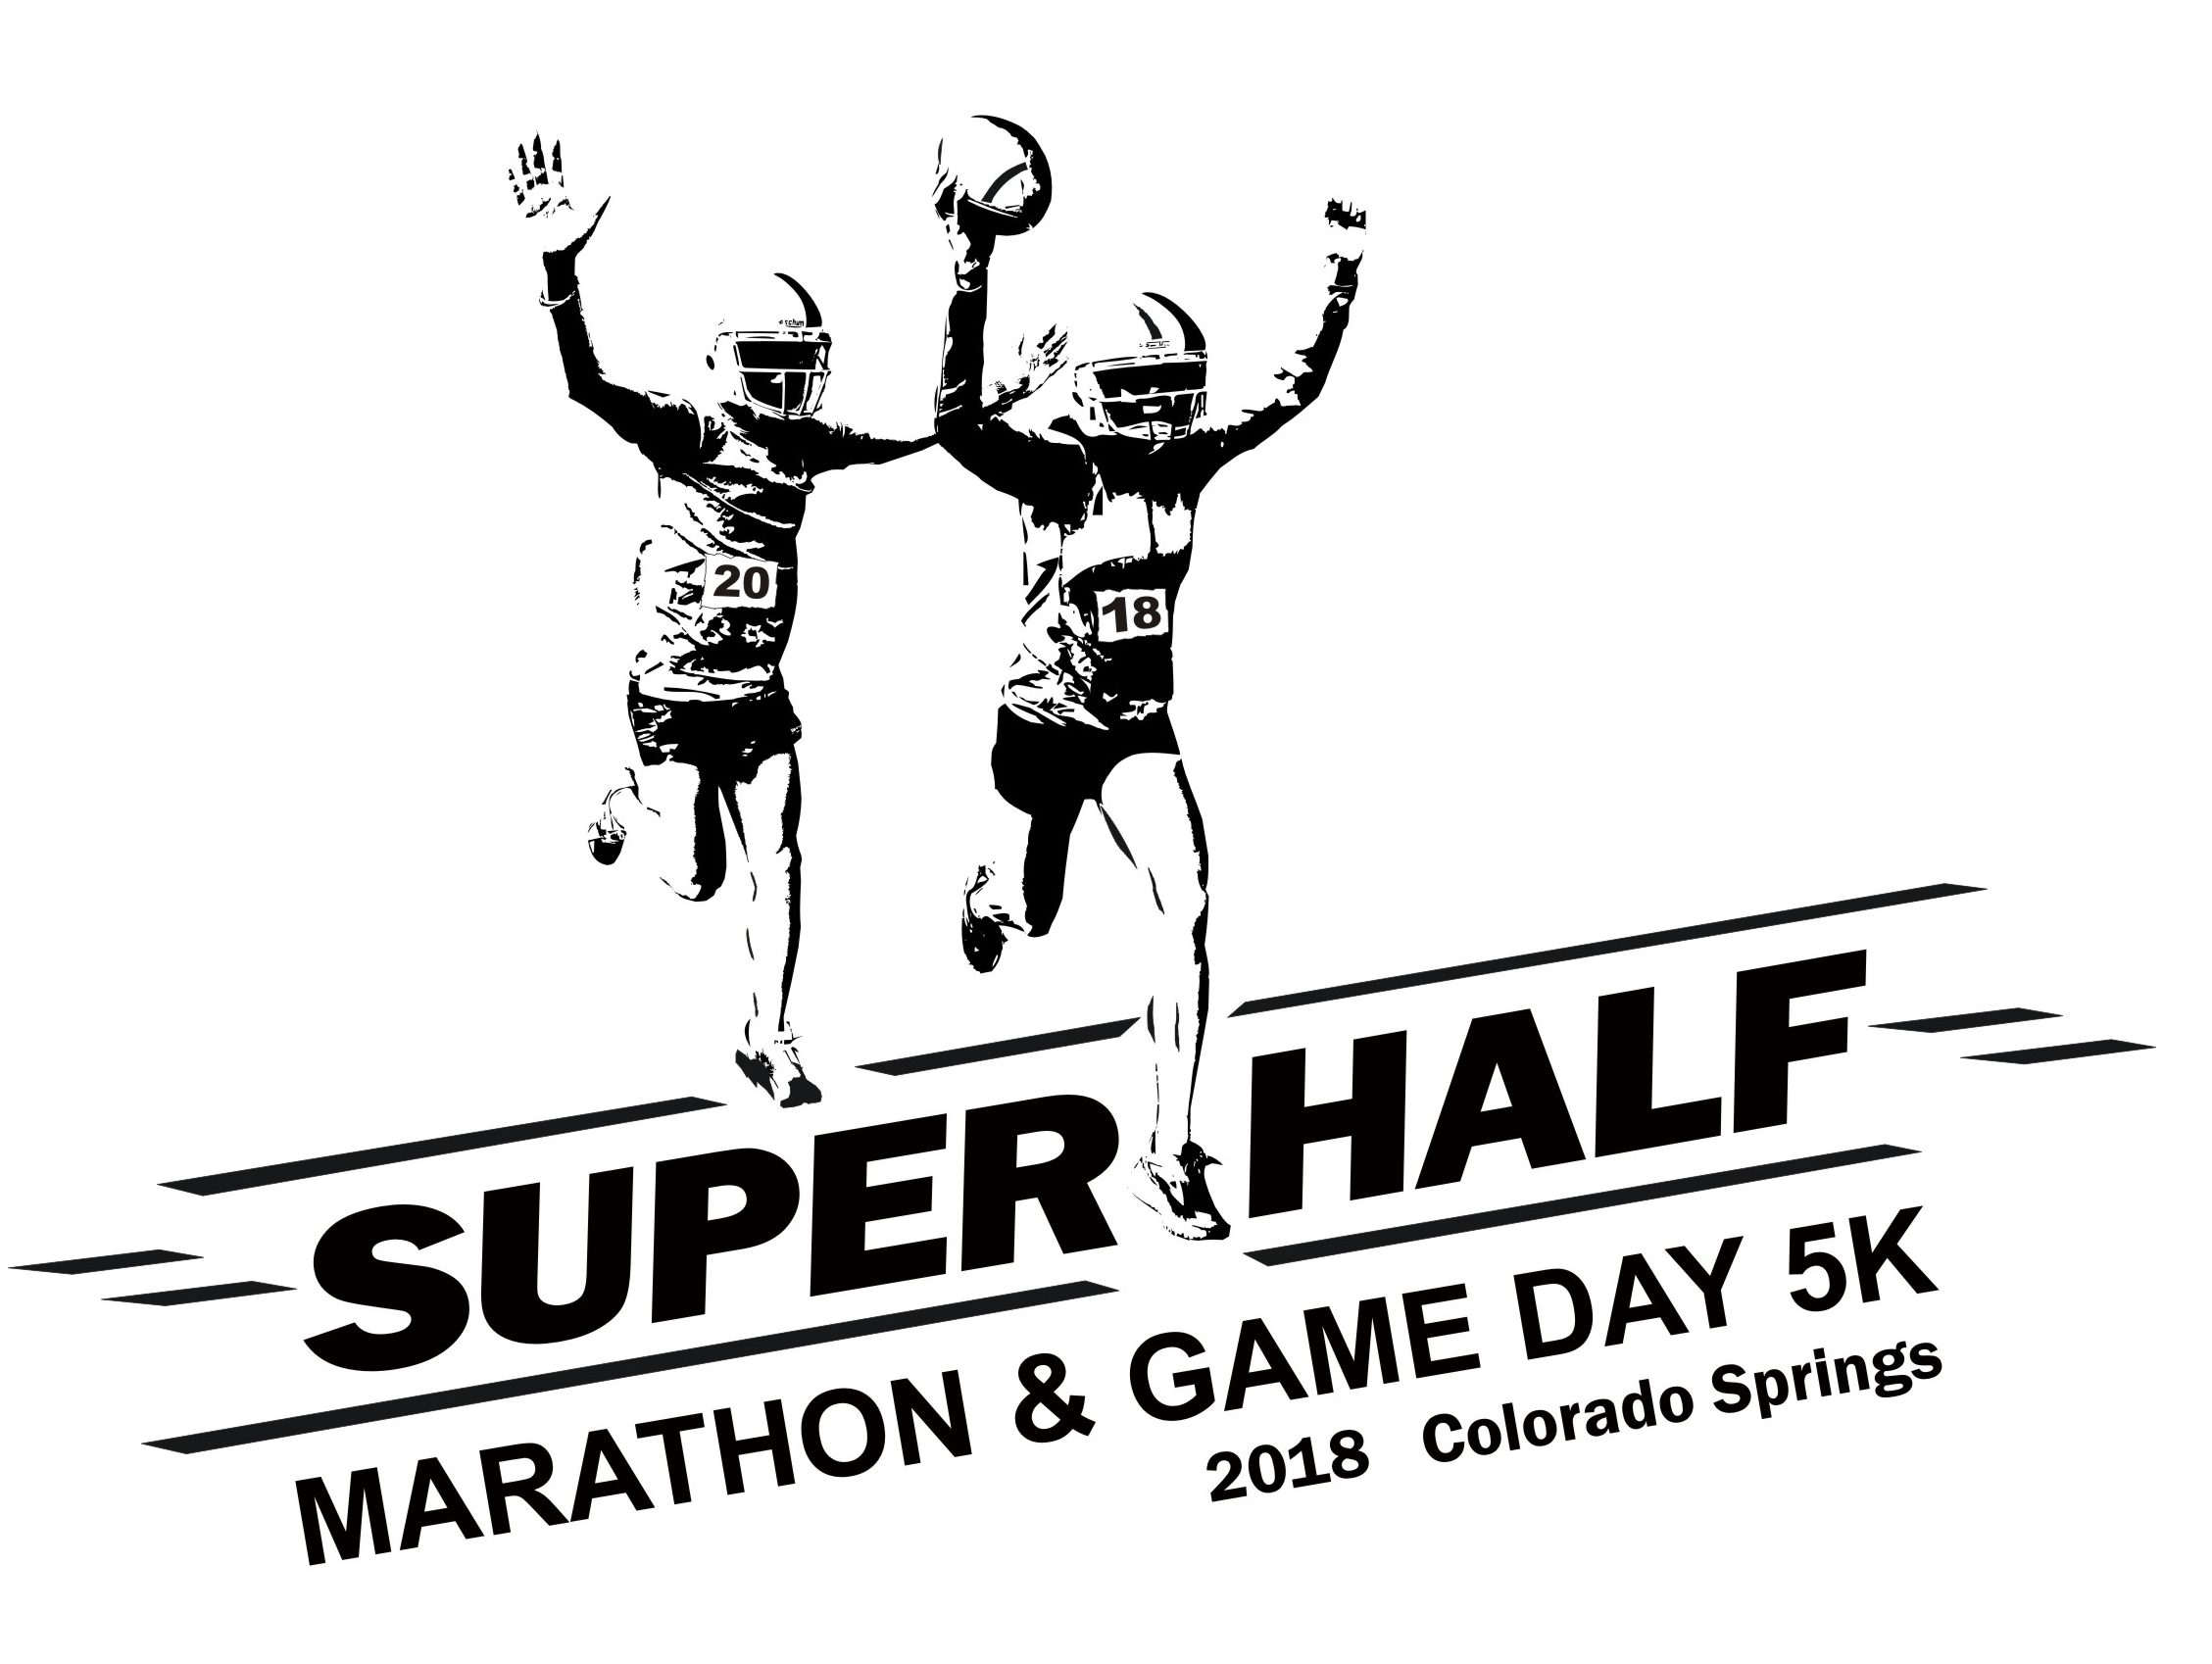 The Super Half Marathon Amp Game Day 5k Presented By Pikes